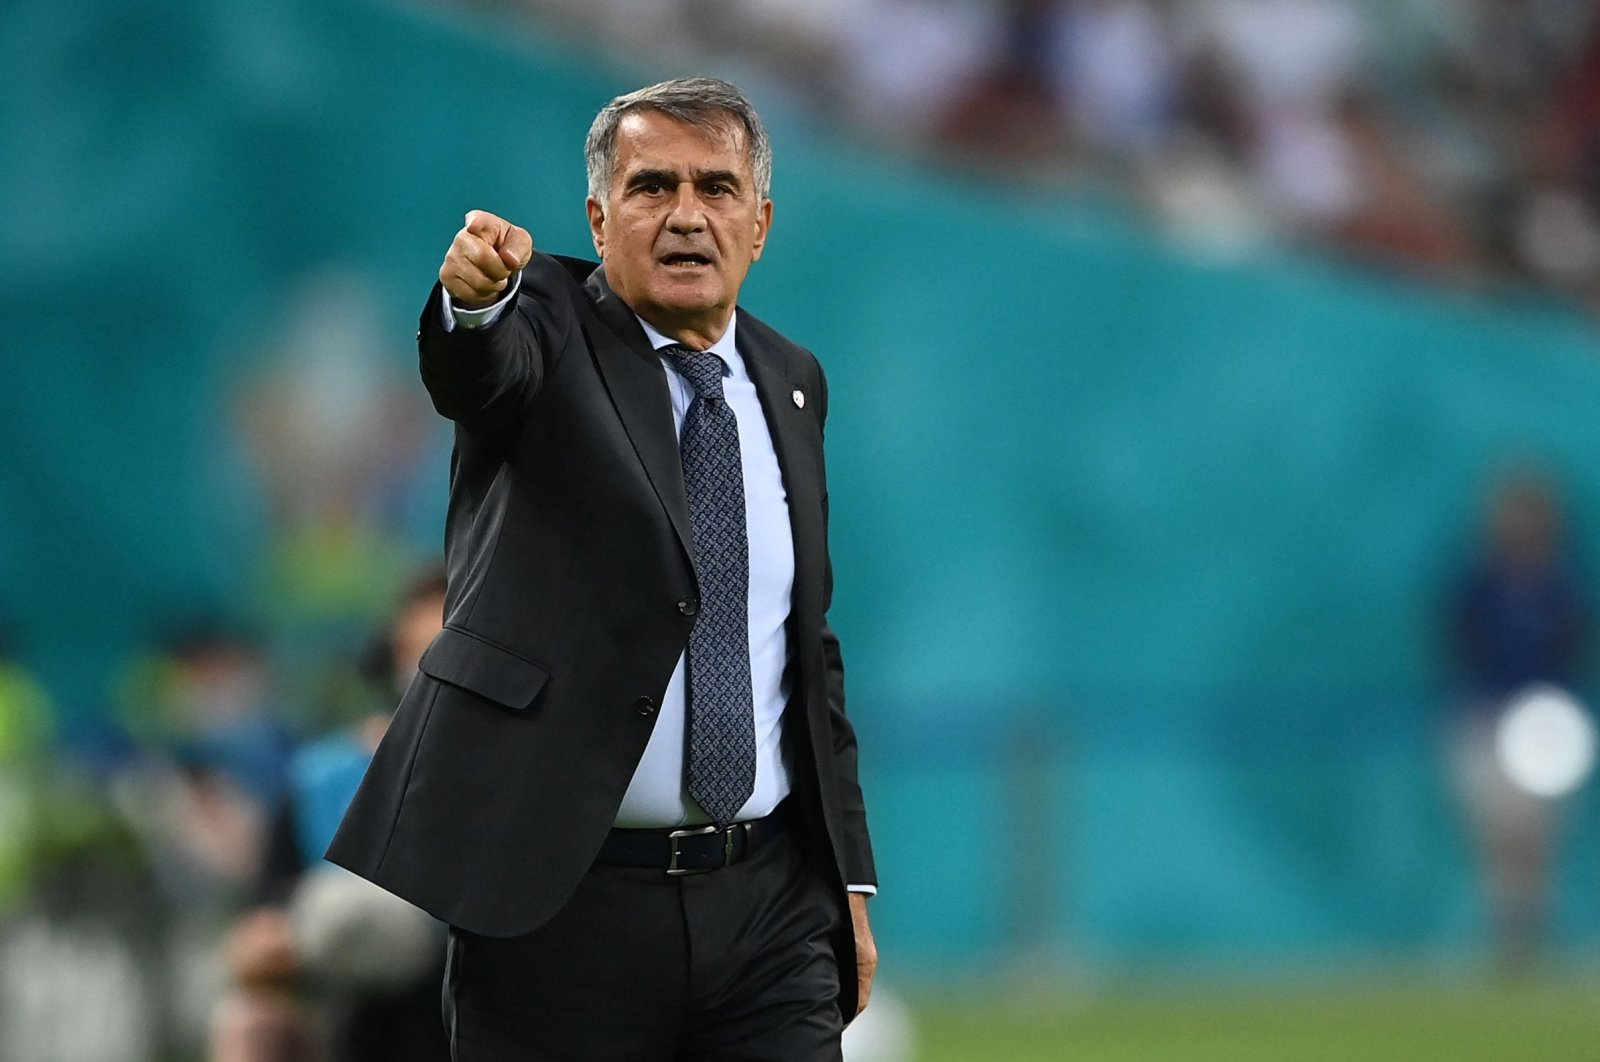 Turkey's coach Şenol Güneş reacts from the sidelines during the UEFA Euro 2020 Group A match against Switzerland at the Olympic Stadium, Baku, Azerbaijan, June 20, 2021. (AFP Photo)